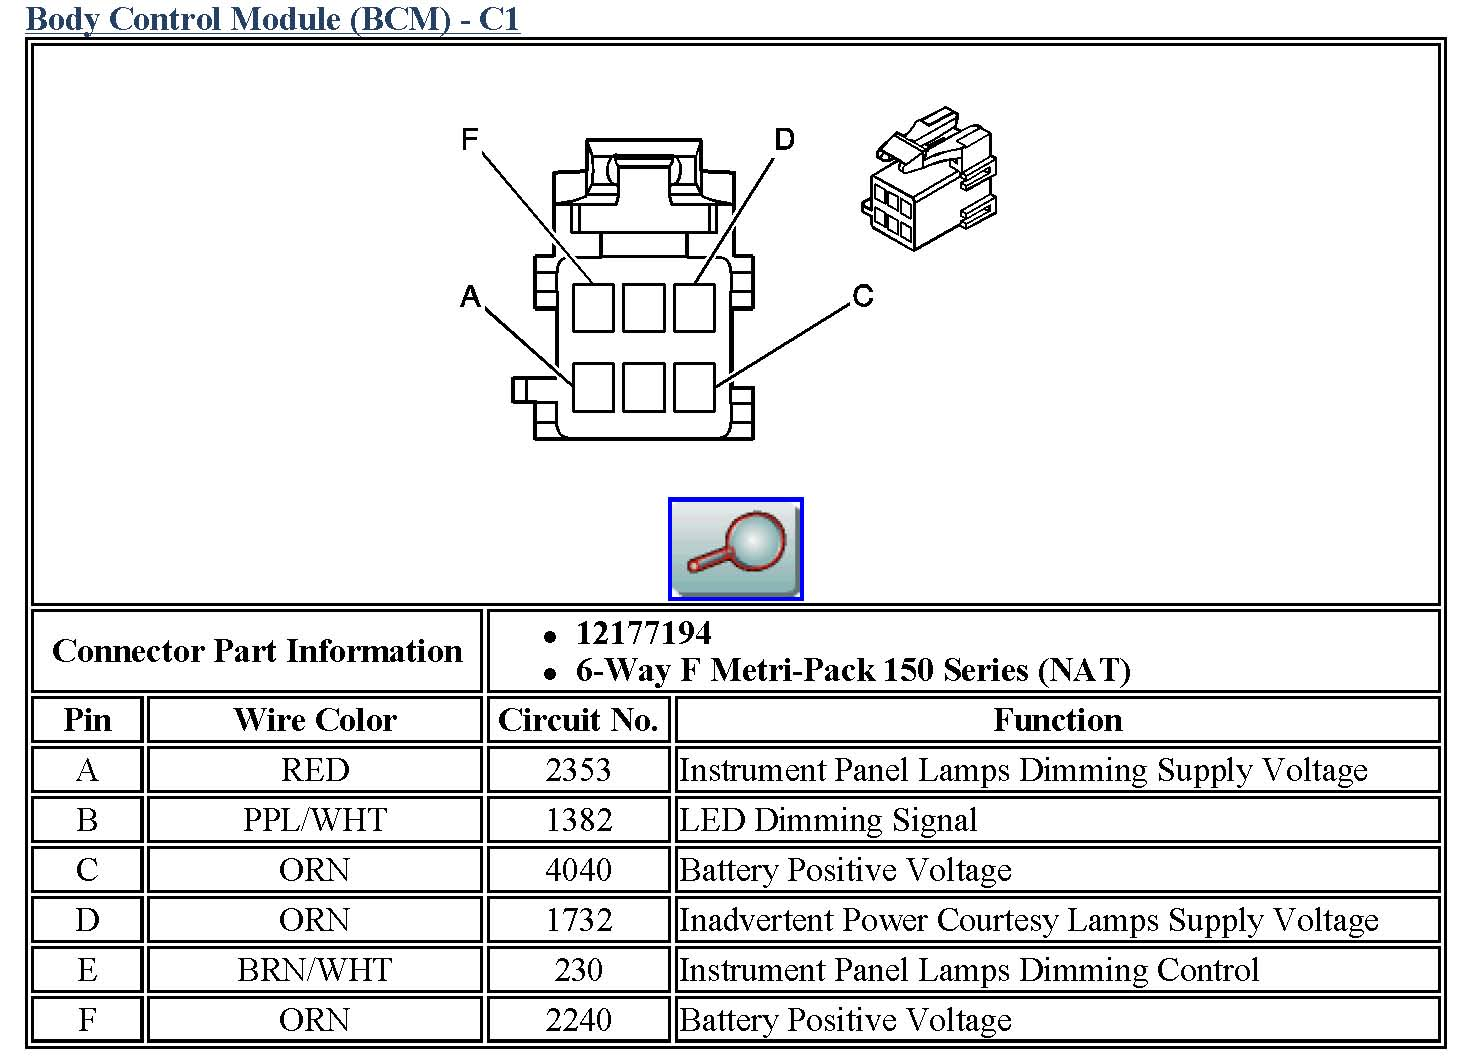 03bcmc1 bcm basics 101 (03 06) 2012 silverado bcm wiring diagram at n-0.co